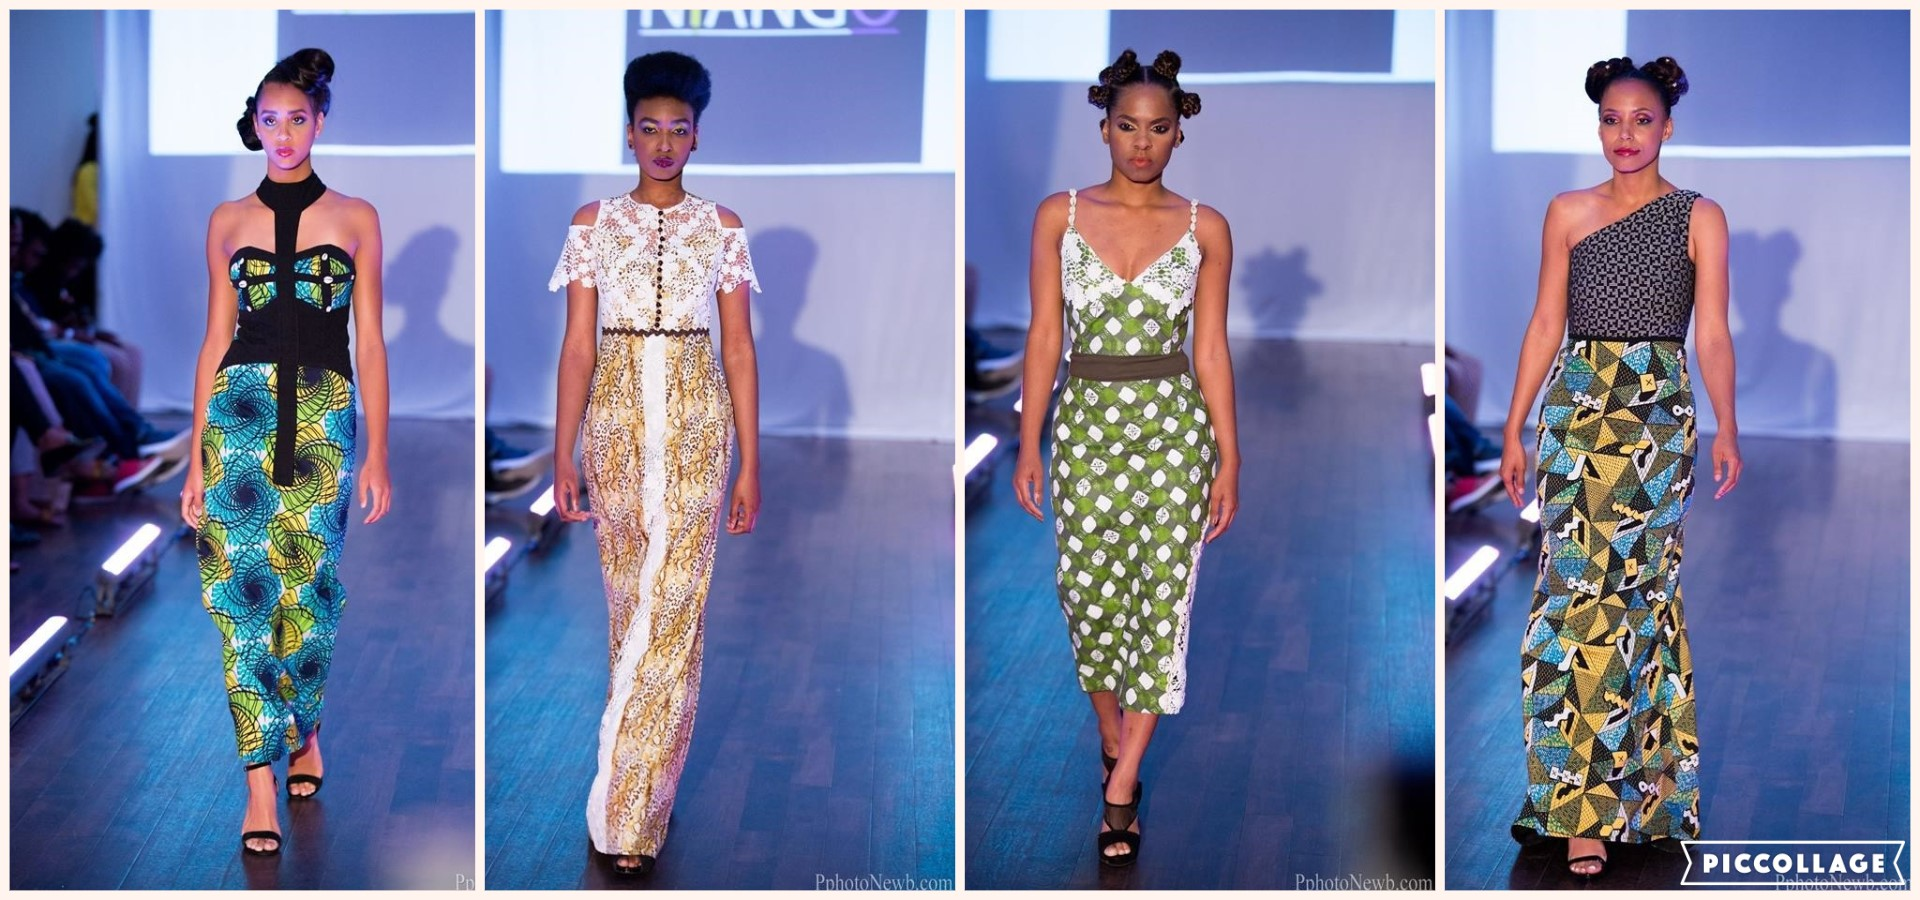 Four dresses from Niango's 'African Queens' collection. Photo credit: Photonewb